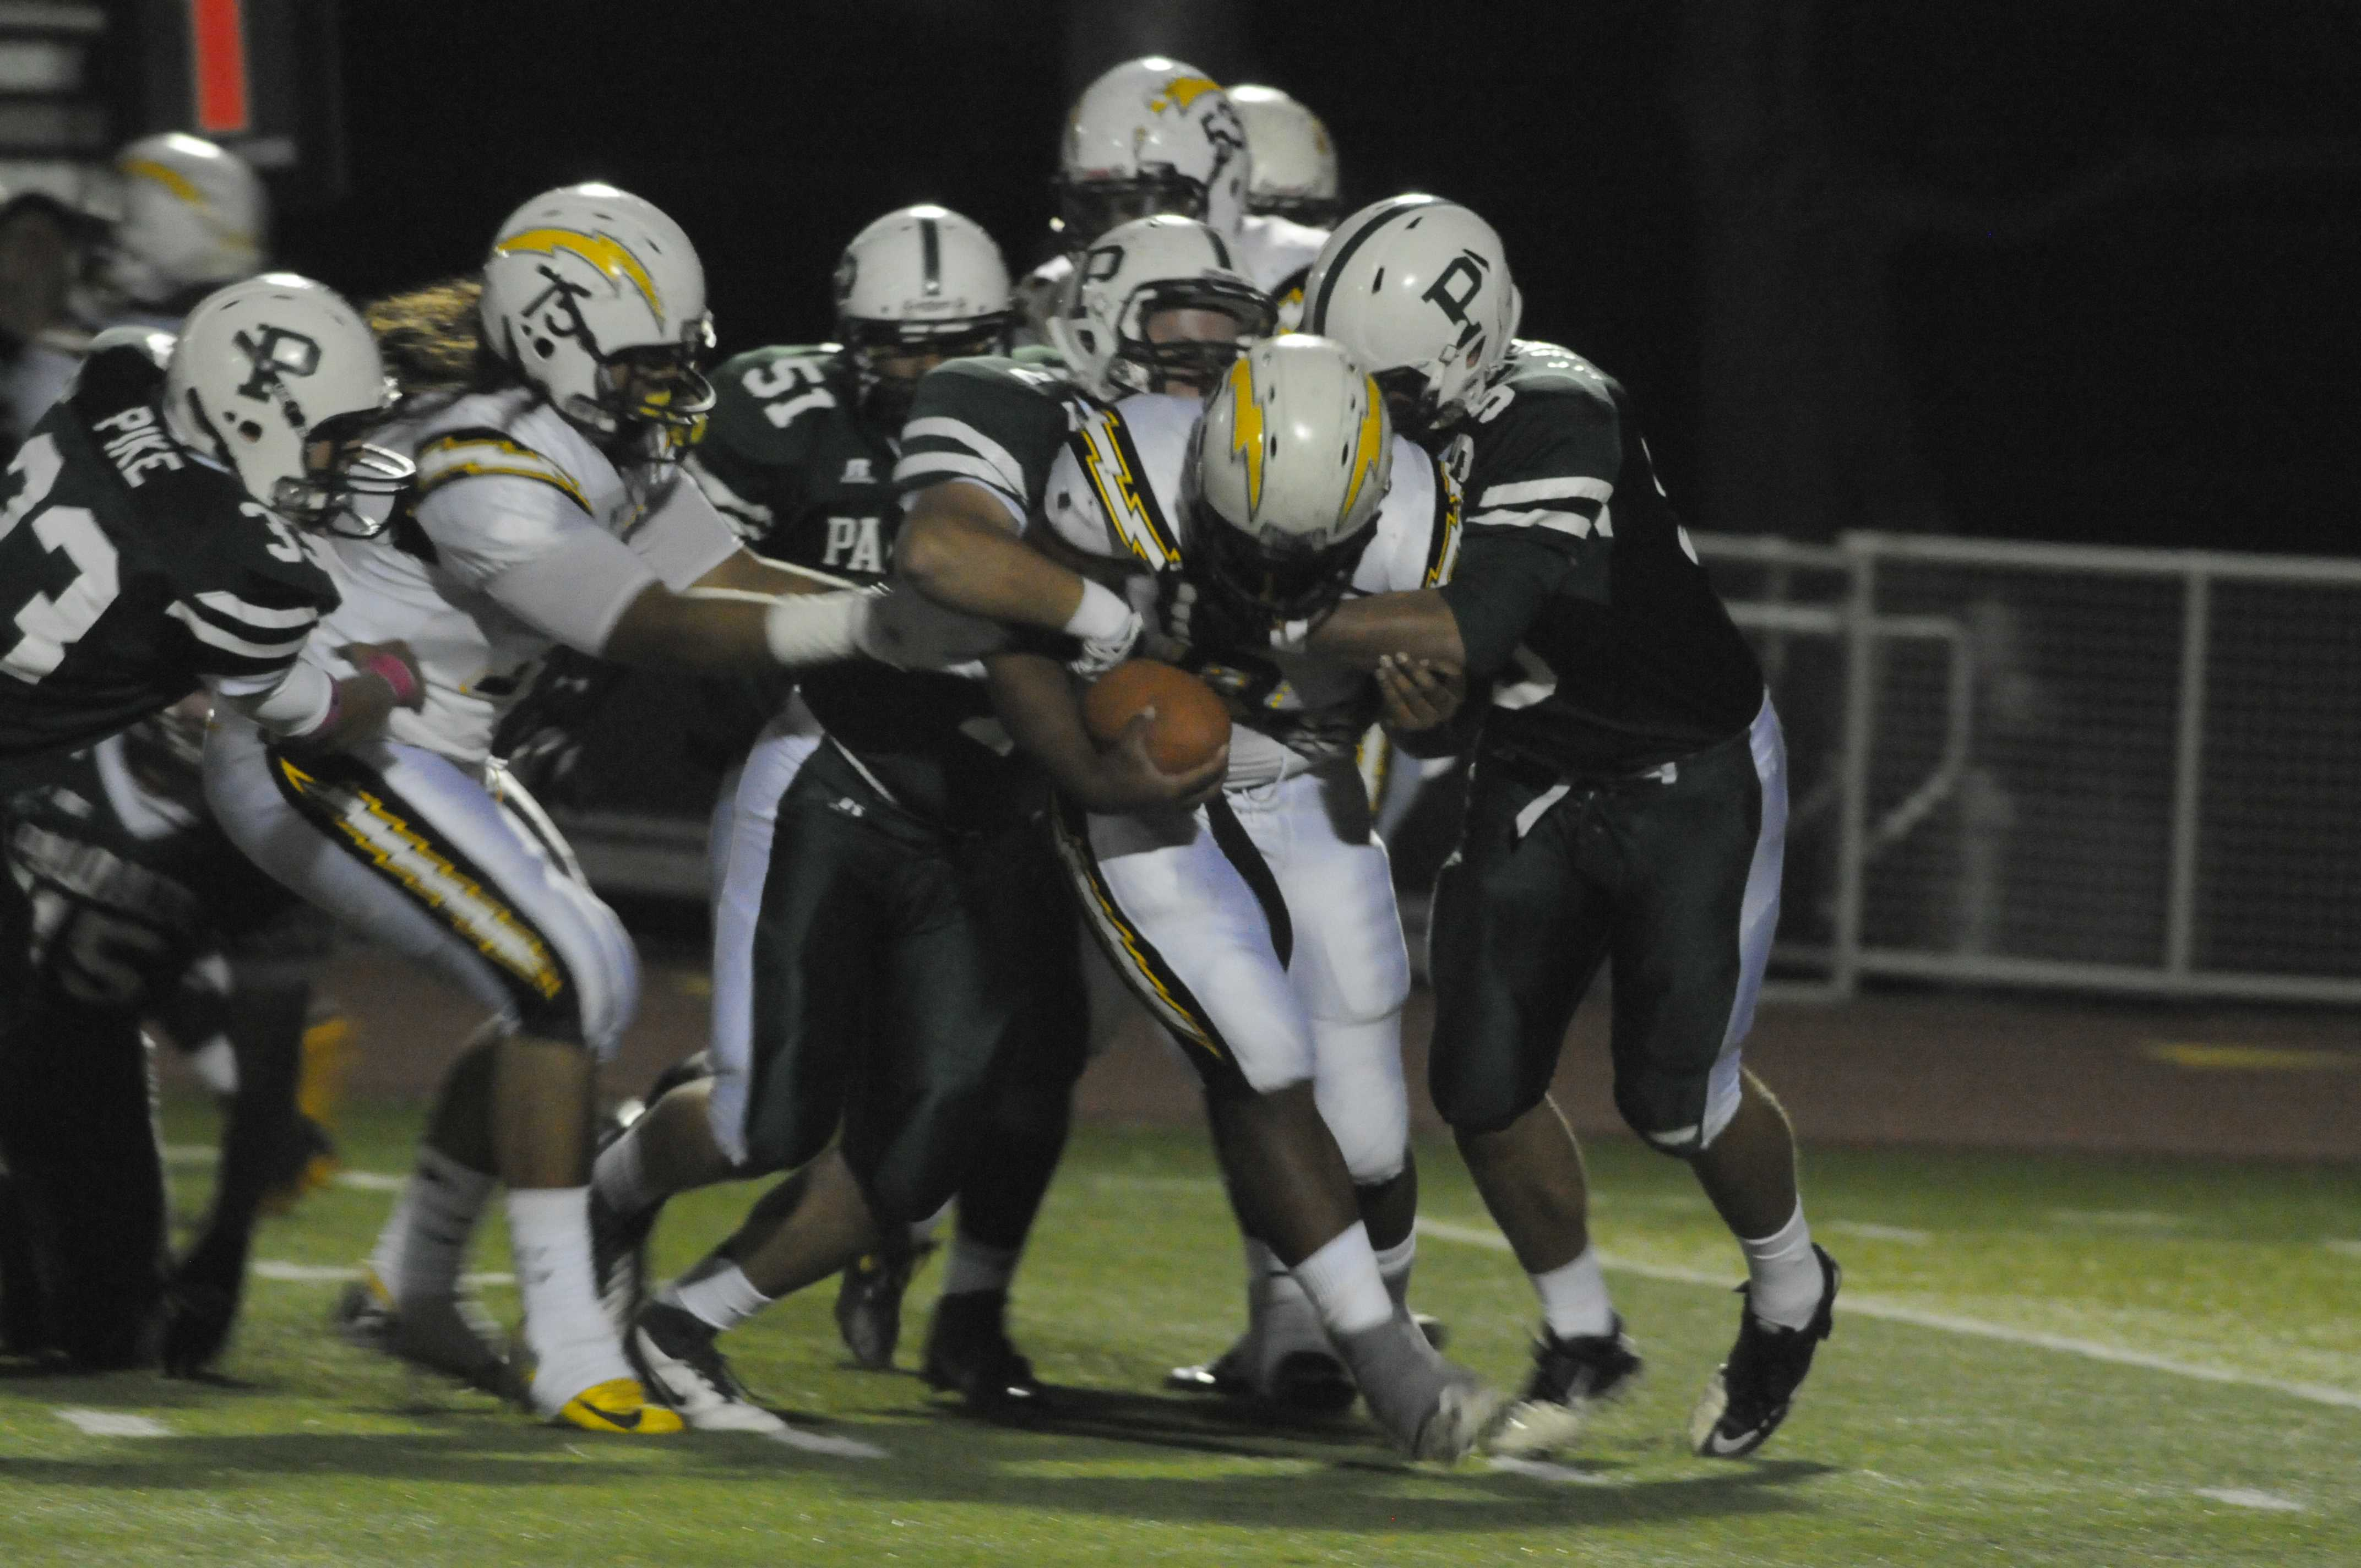 The Paly defensive line ties up a Wilcox player. Wilcox rushed for 540 of their 543 total yards. Photo by Liana Pickrell.